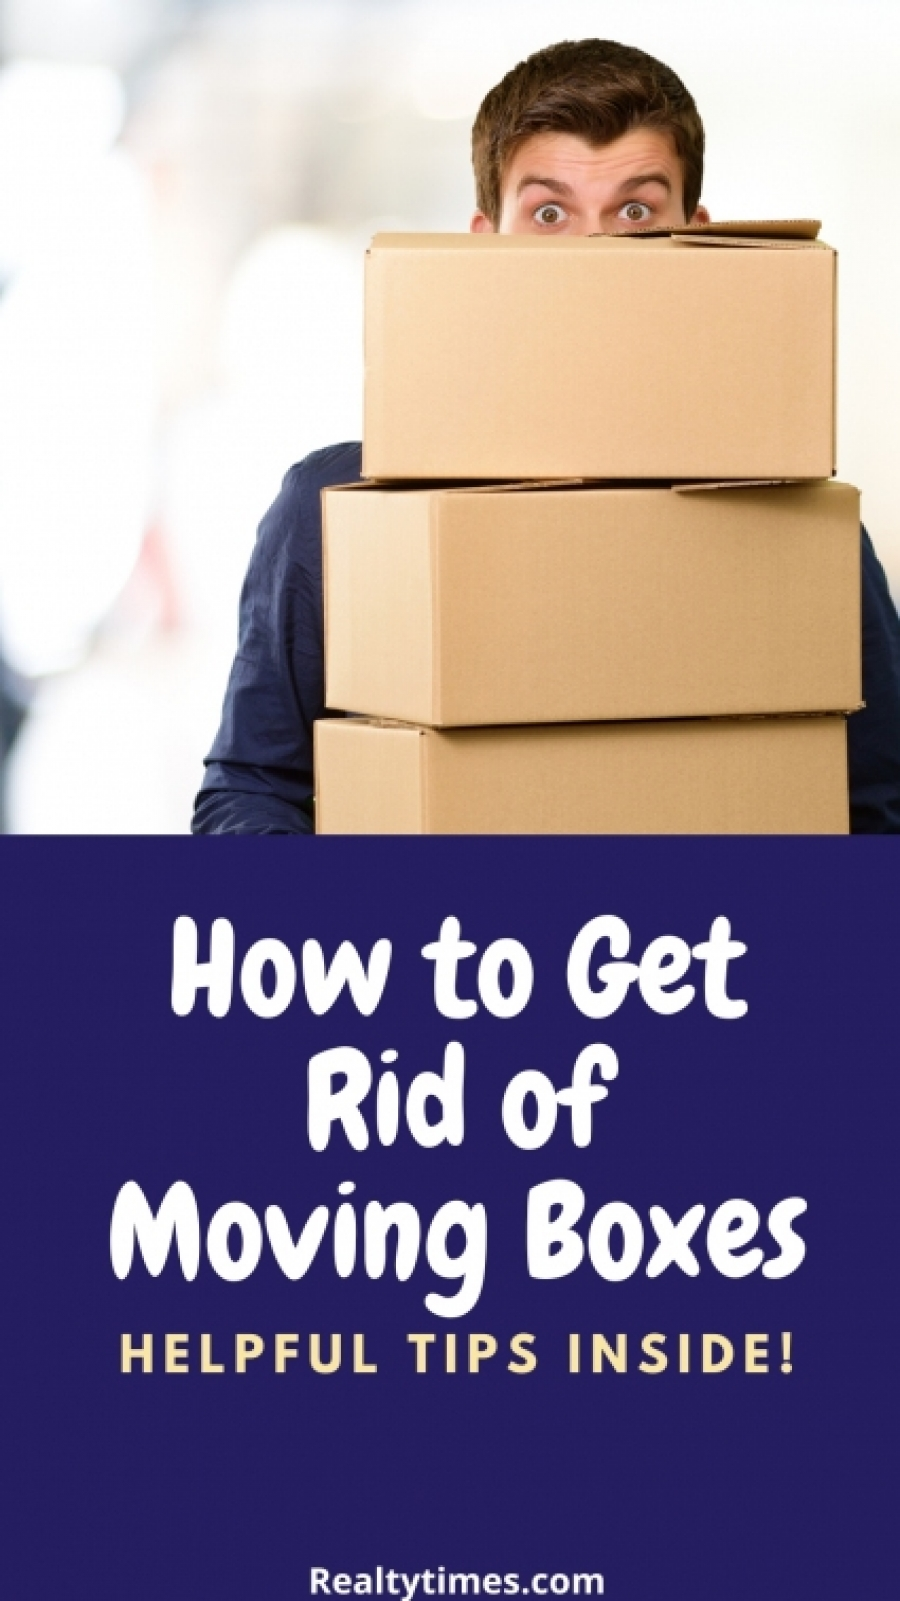 How to Dispose of Moving Boxes